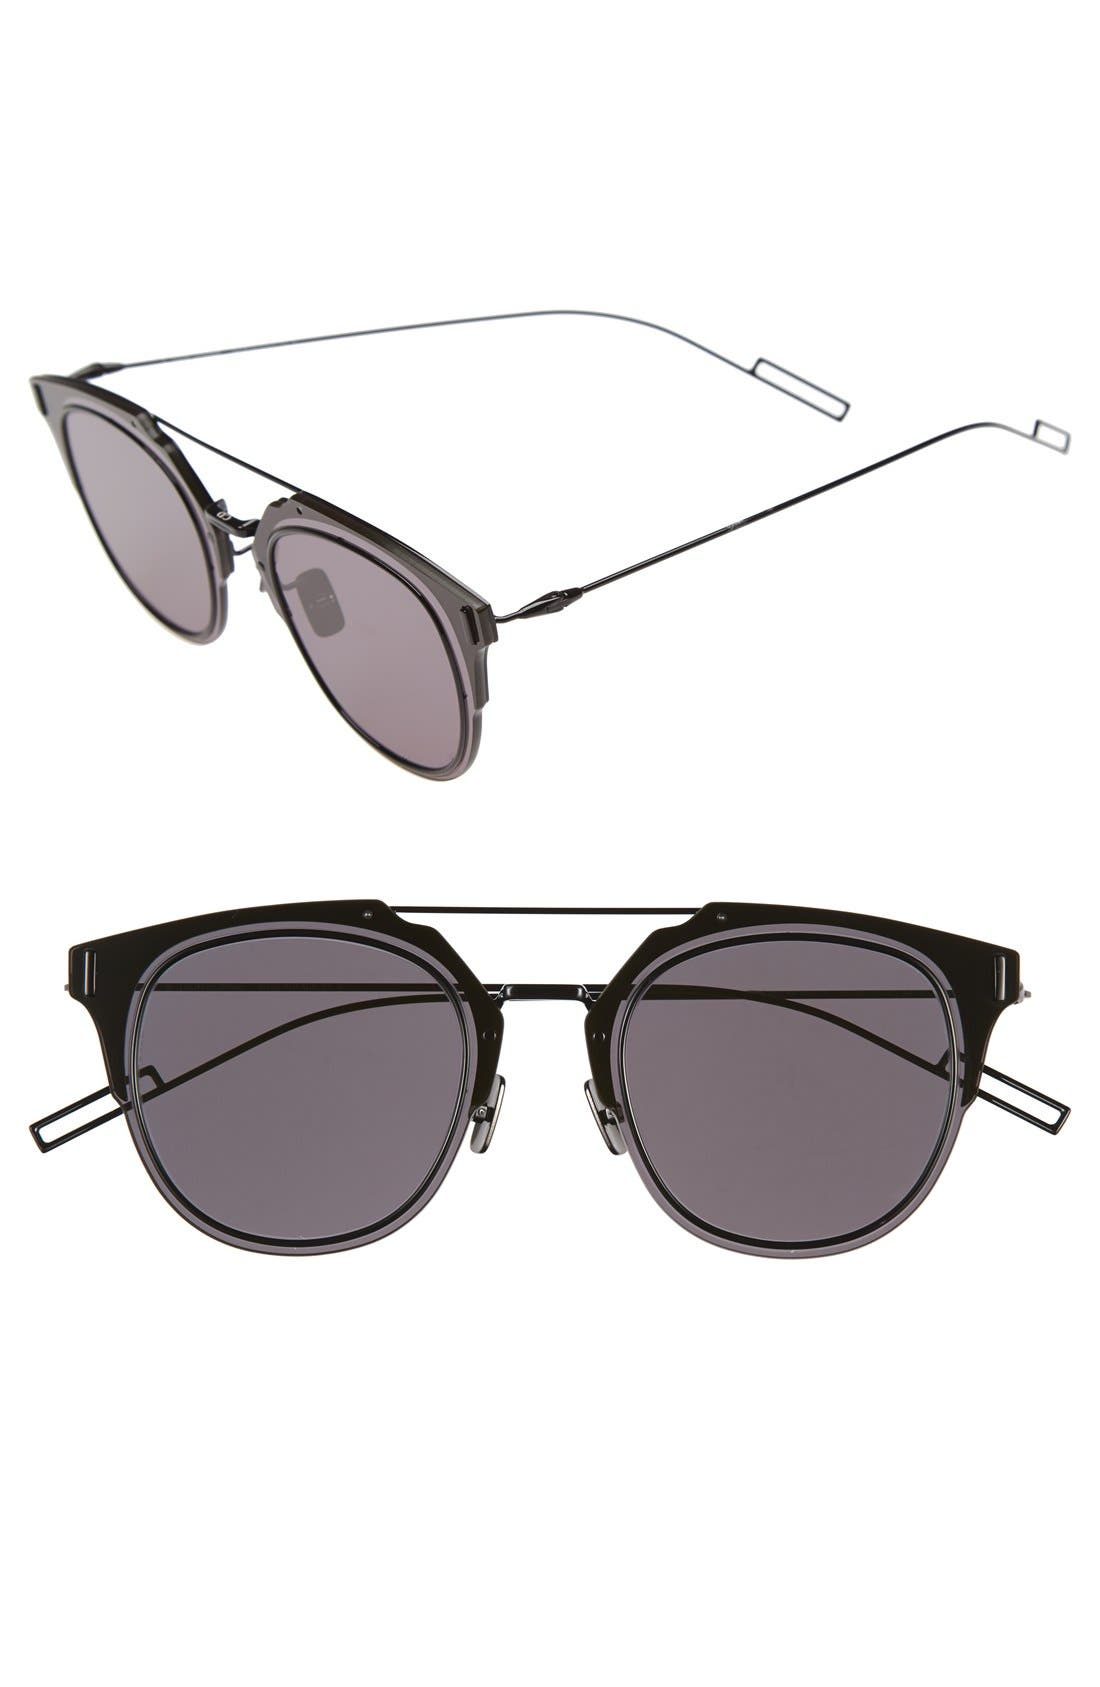 DIOR,                             'Composit 1.0S' 62mm Metal Shield Sunglasses,                             Main thumbnail 1, color,                             DARK GREY BLACK/ GREY